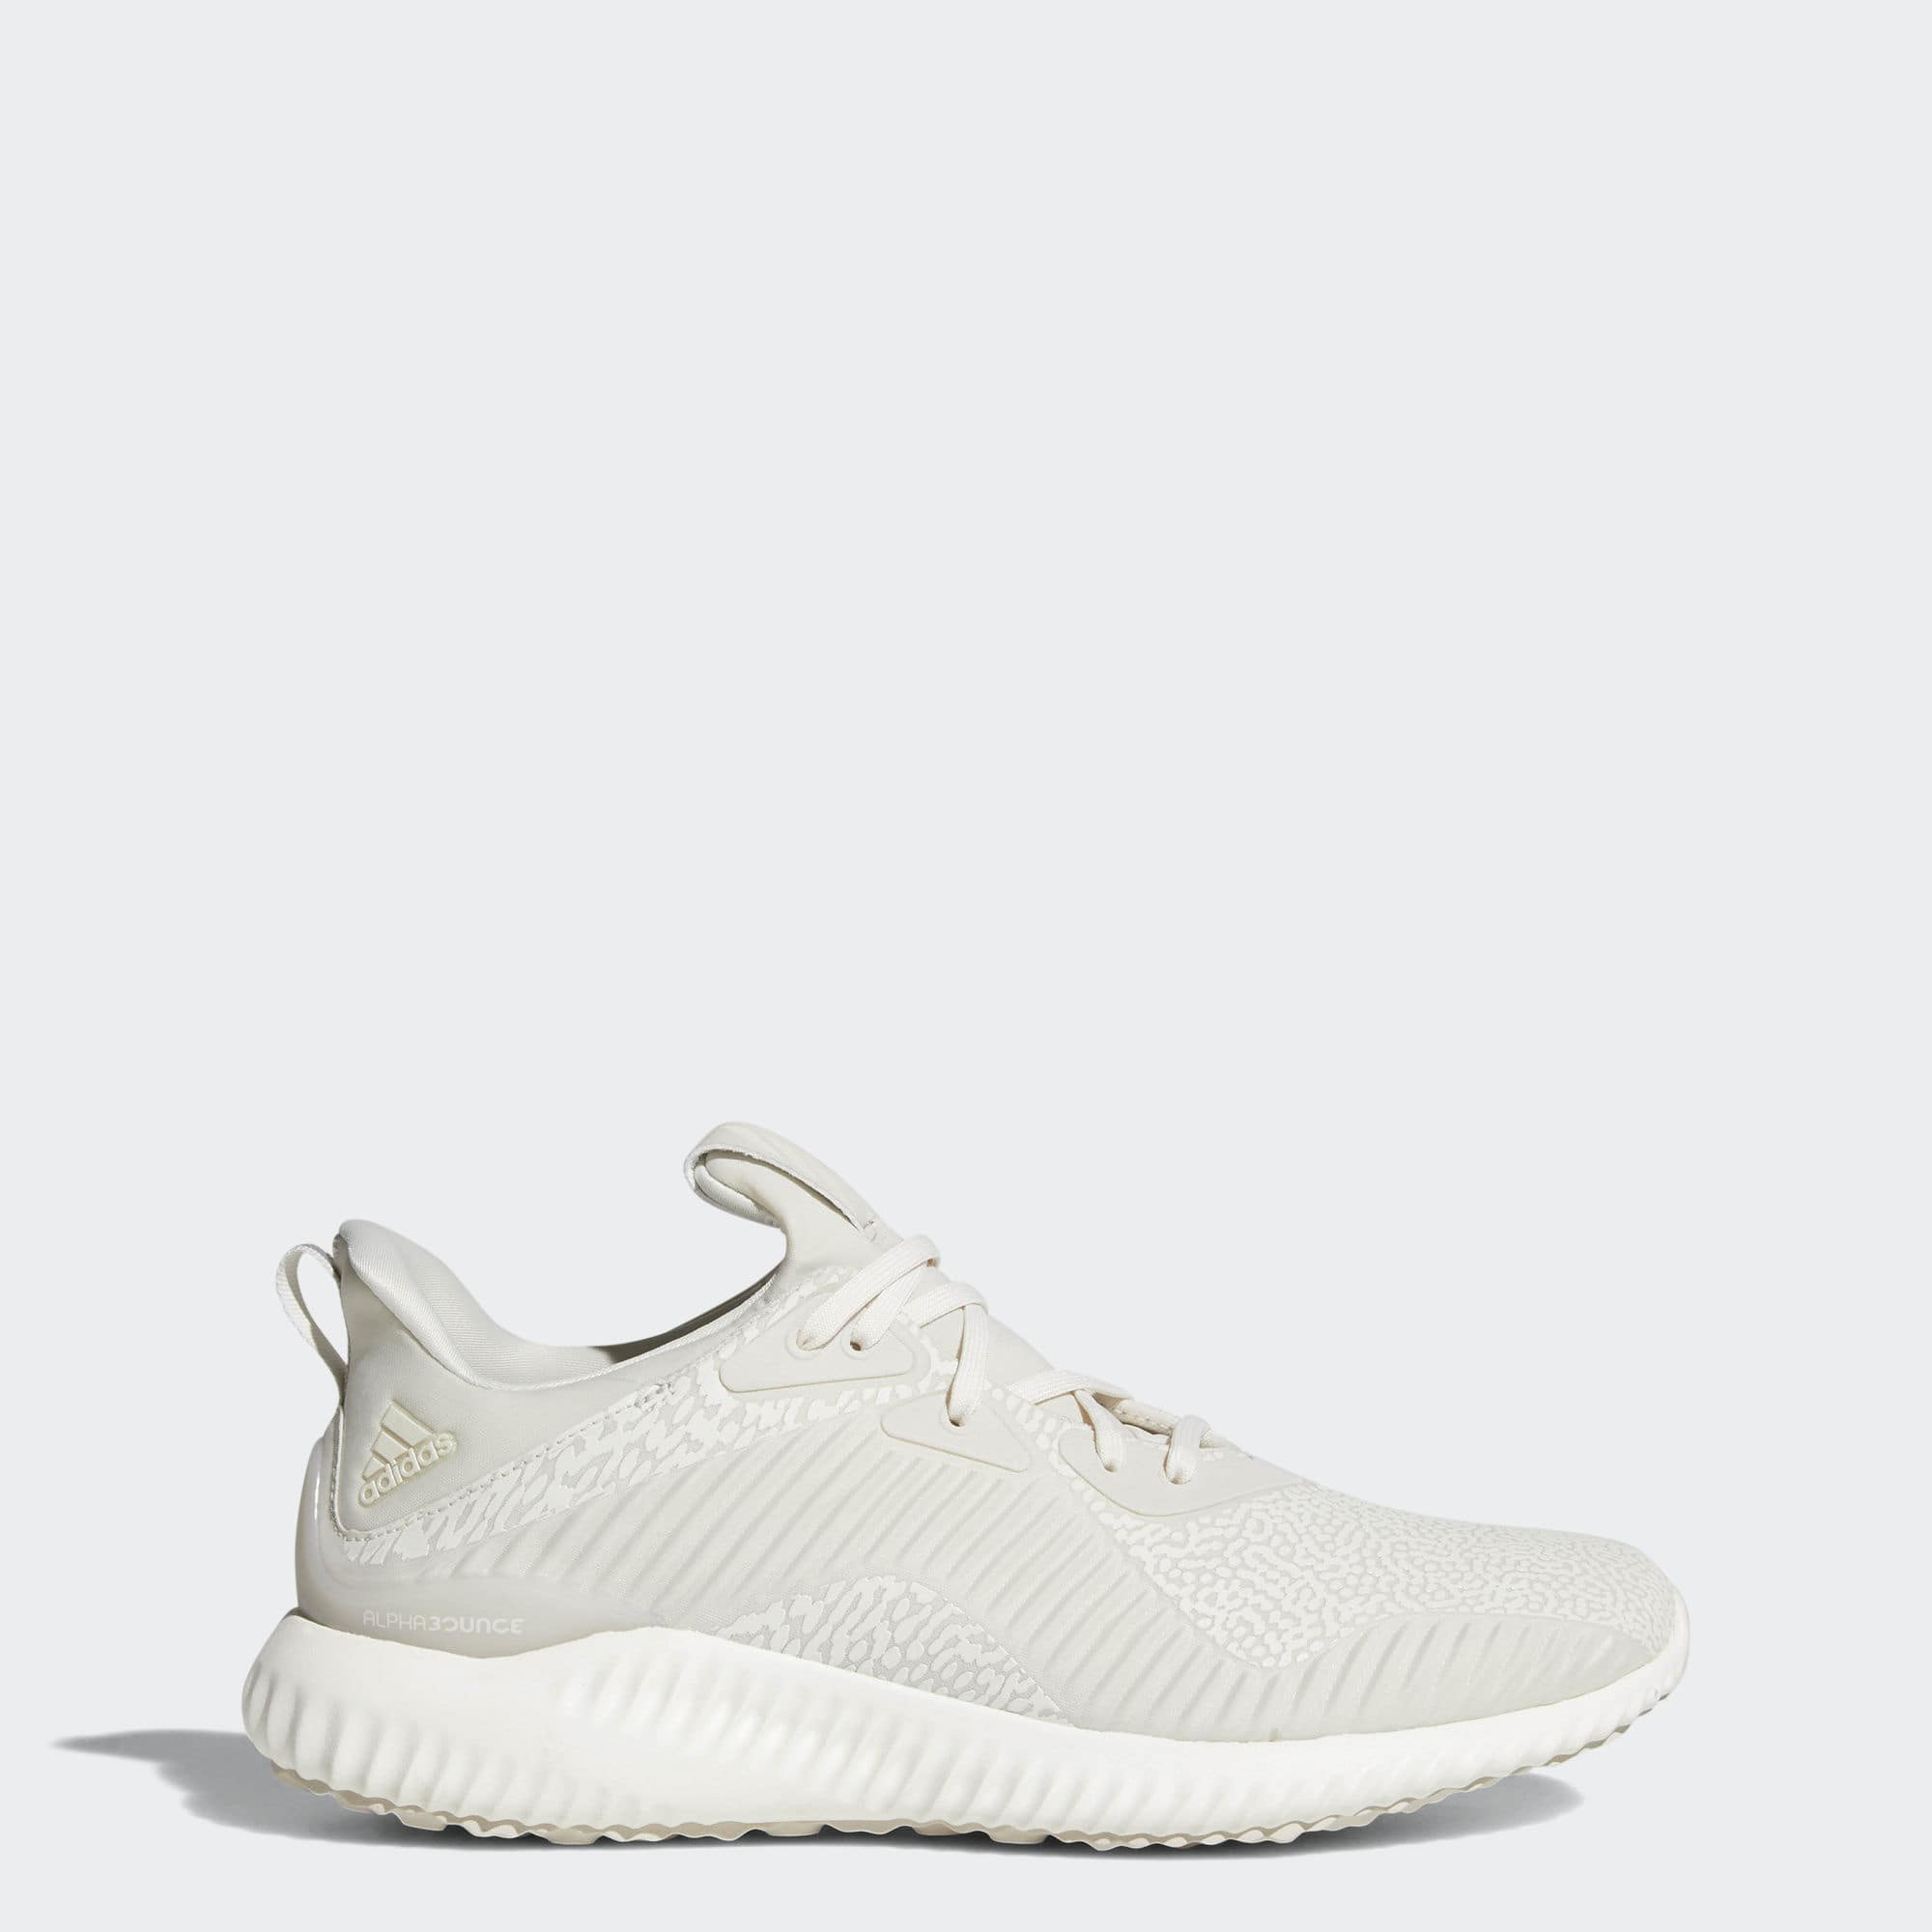 28be275dc adidas Men s Alphabounce Reflective HPC AMS Shoes - Slickdeals.net